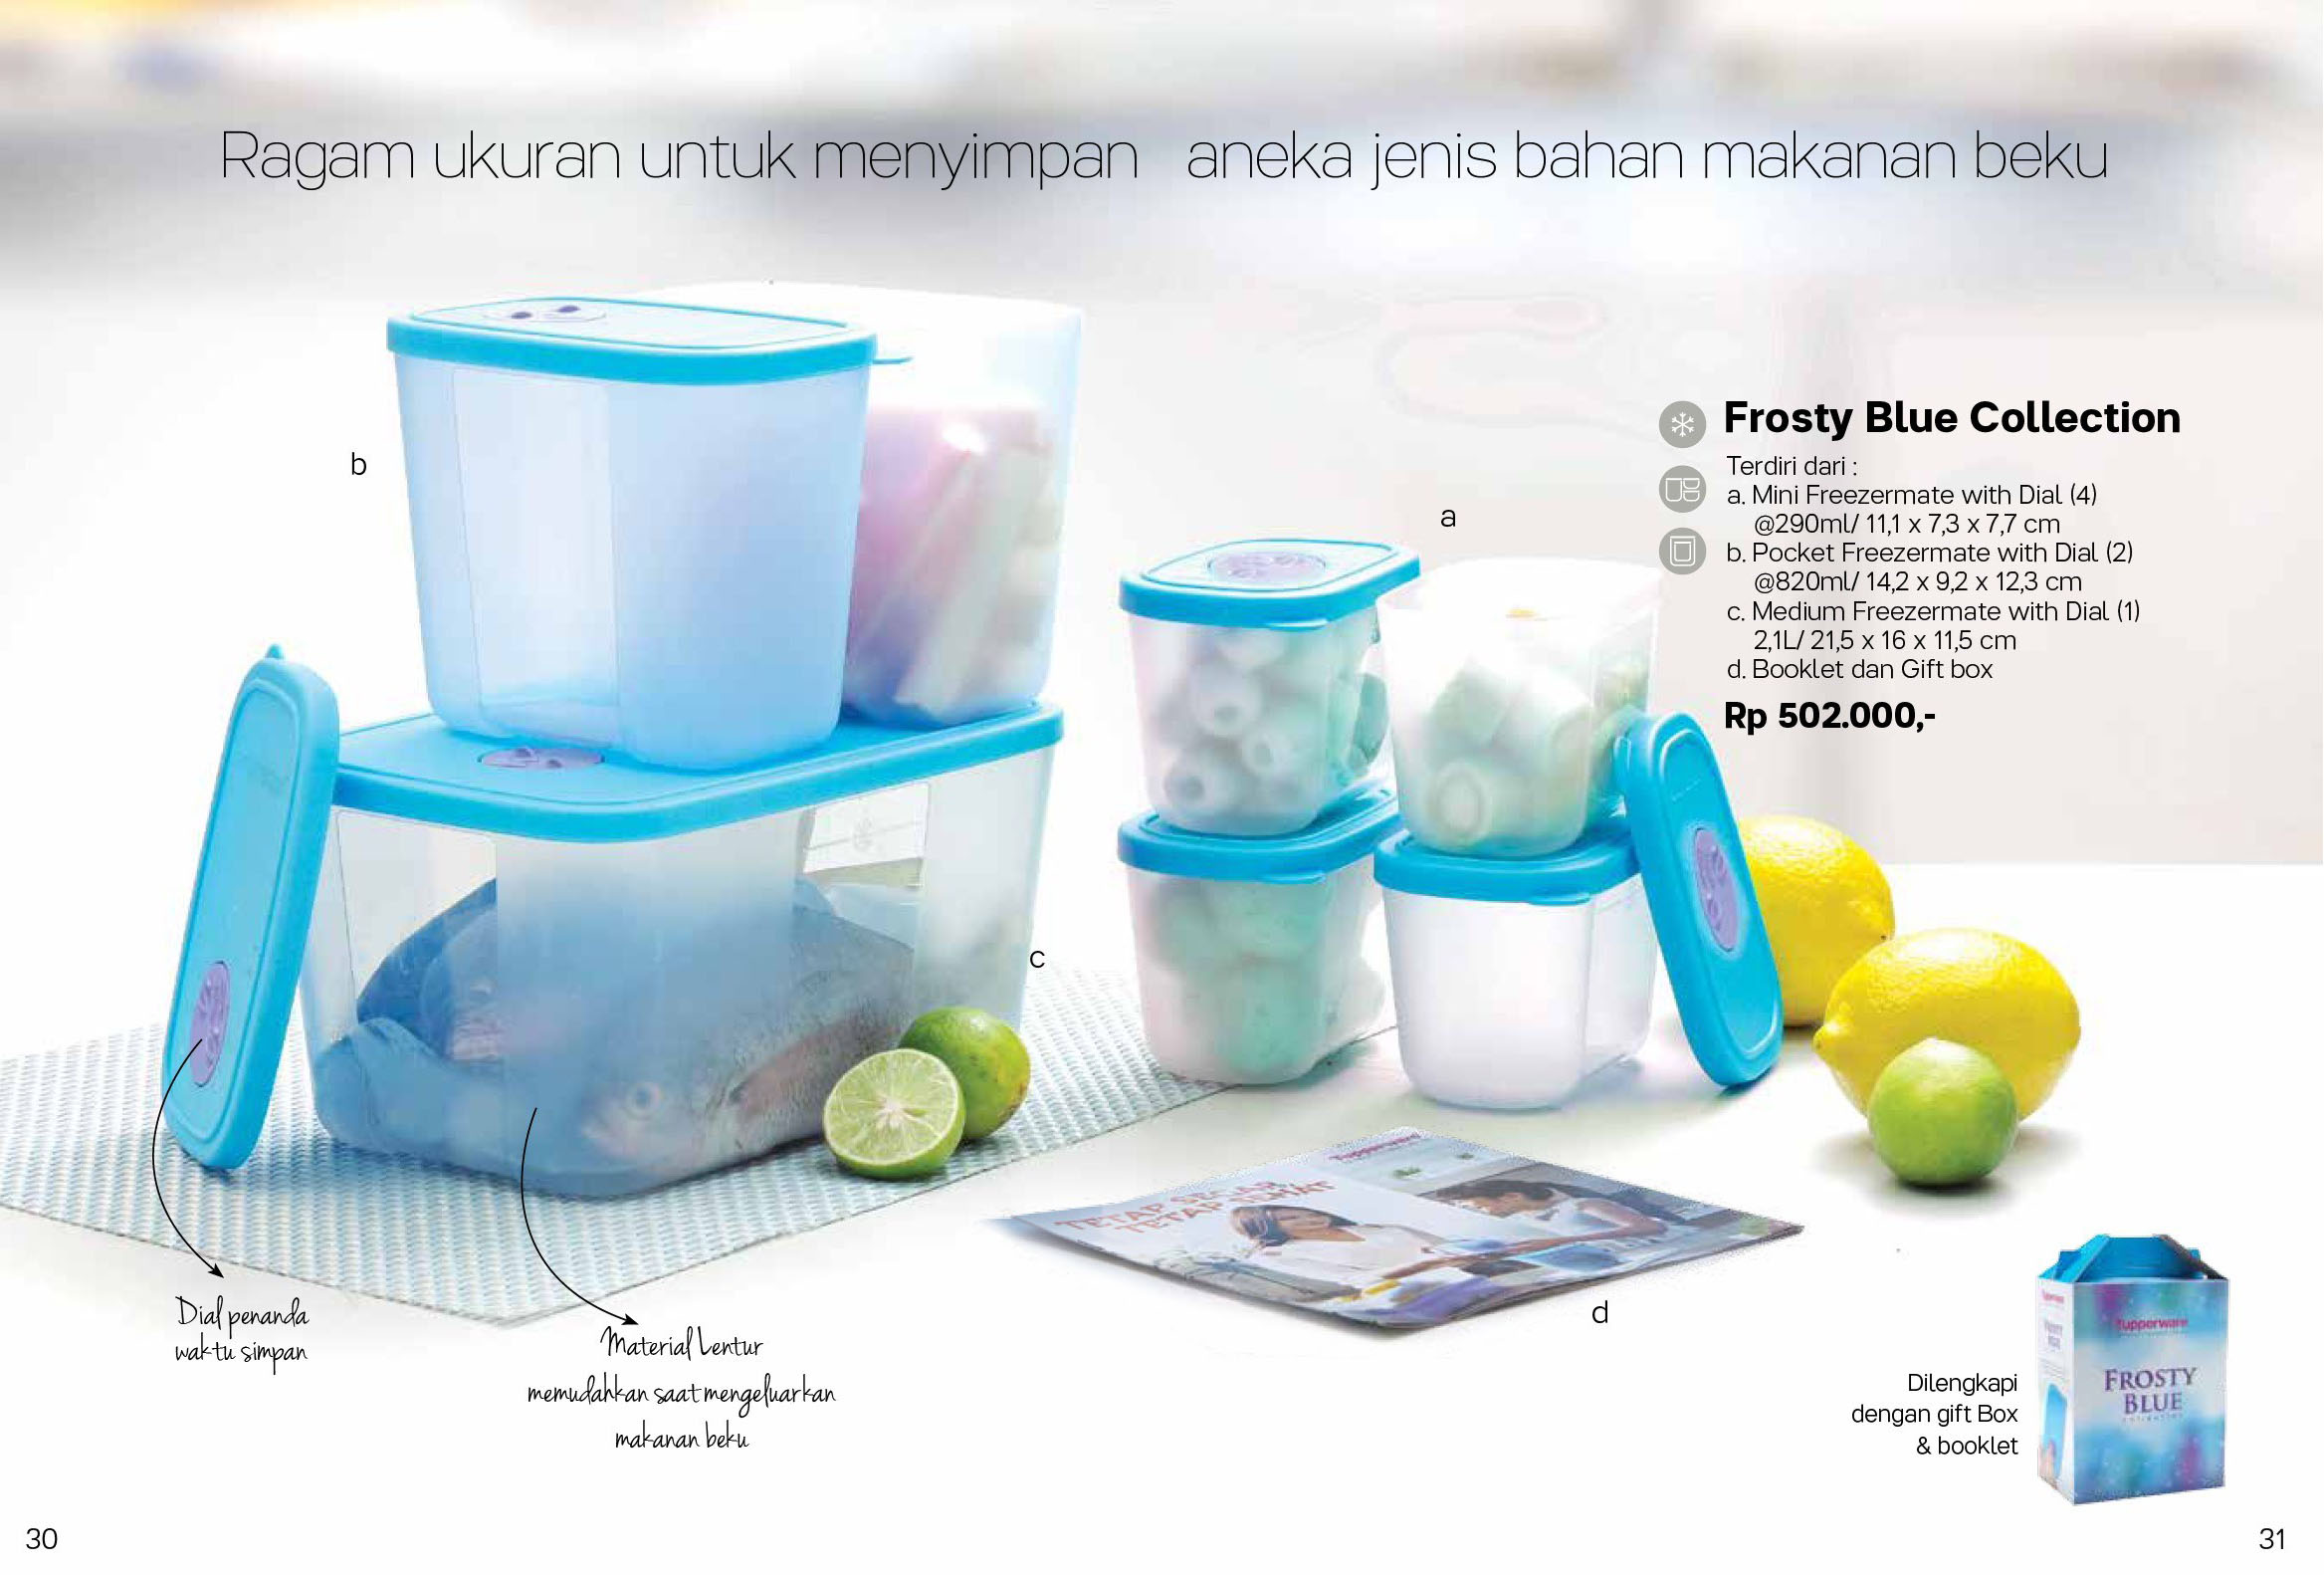 Frosty Blue Collection Tupperware